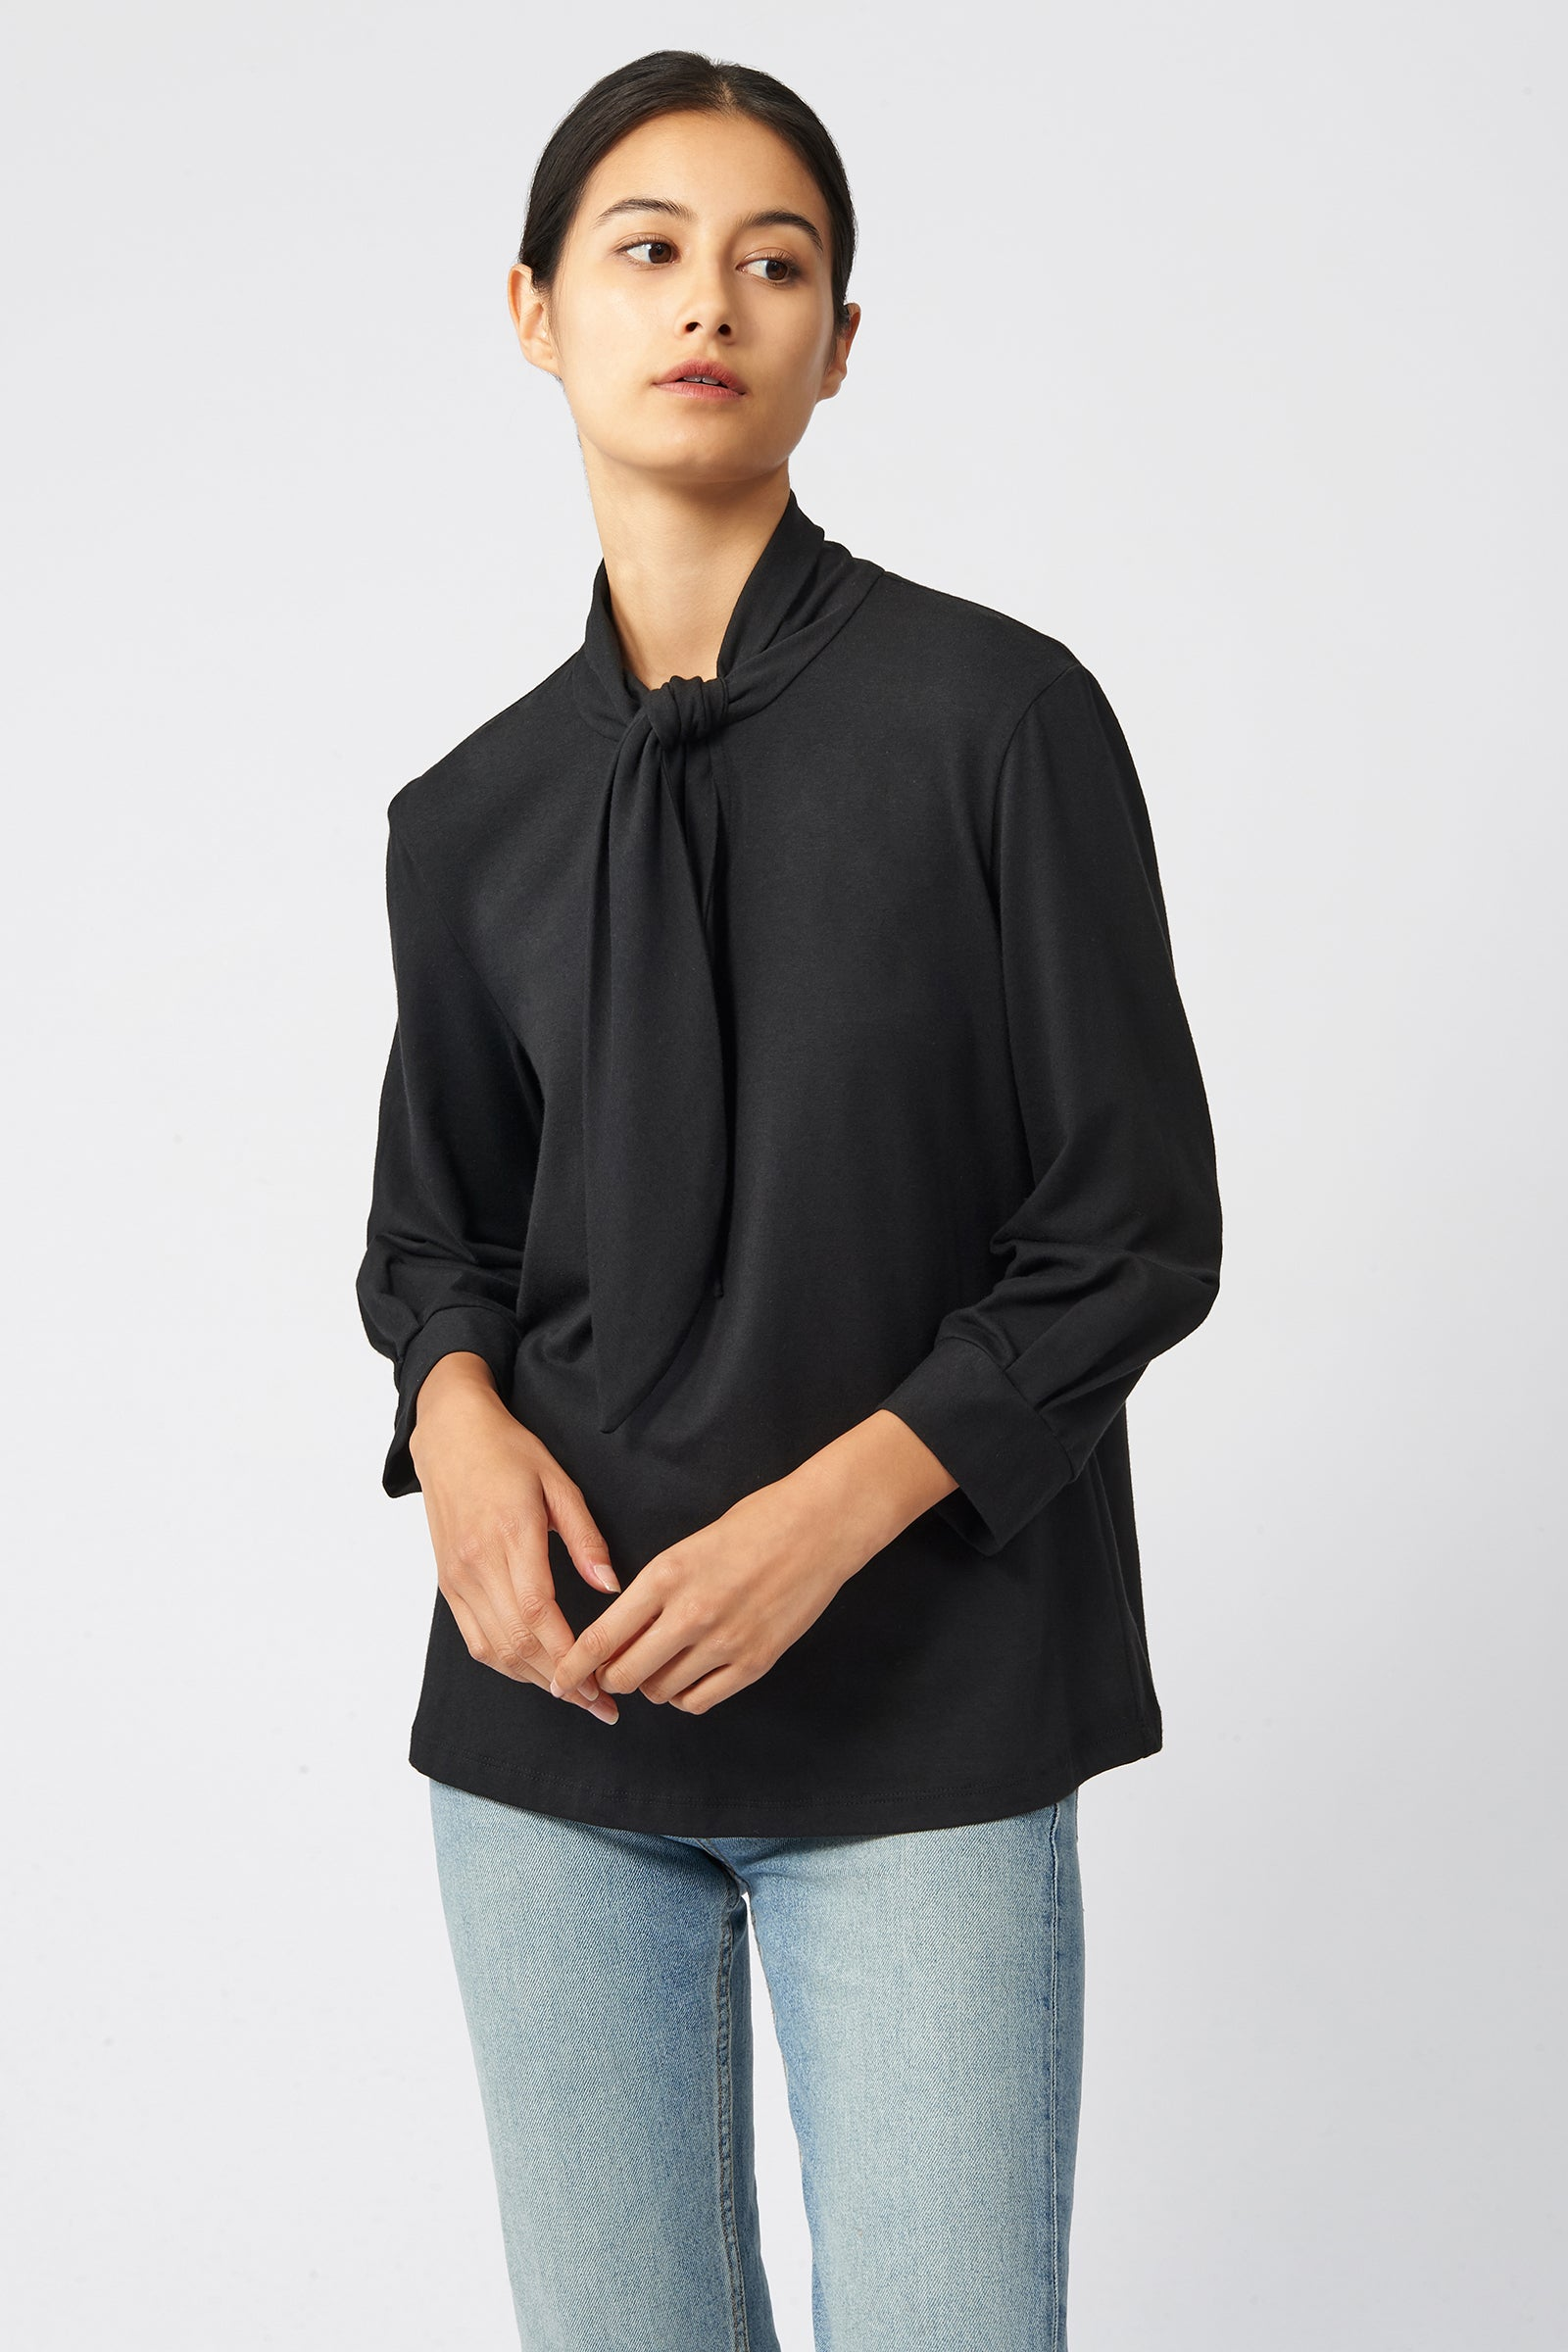 Kal Rieman Tie Neck Top in Black on Model Front View